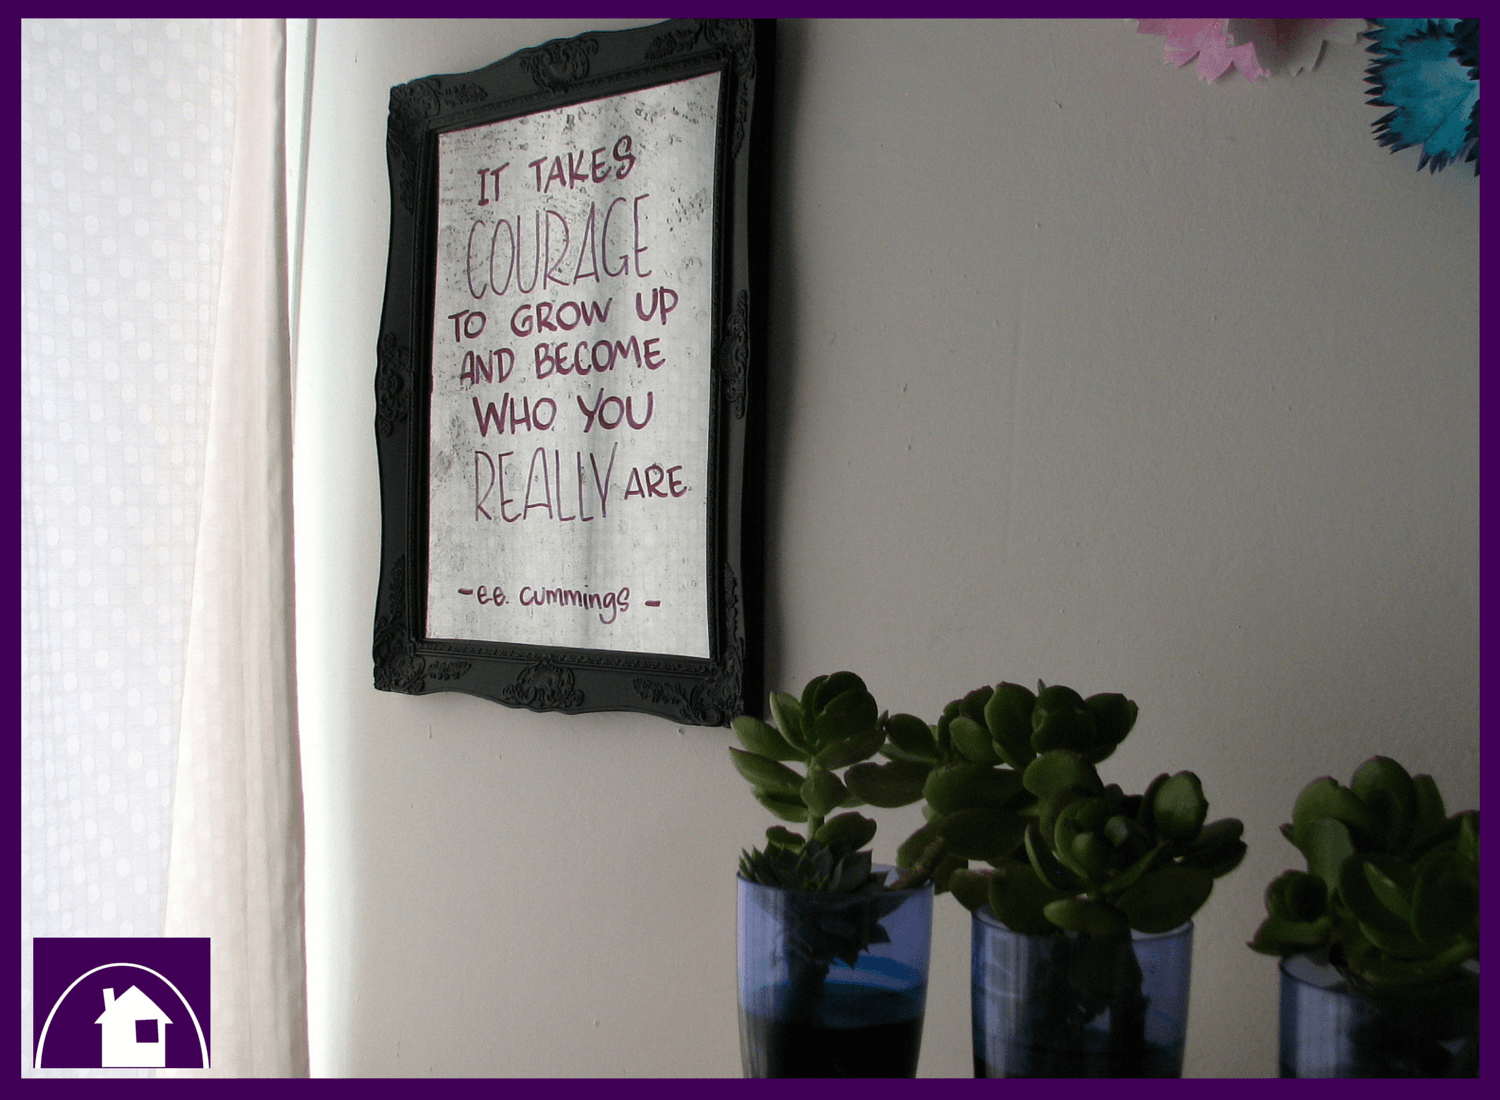 Want to learn how to write like a pro onto a mirrored surface? Check out this awesome DIY Tutorial at the Purple Paper House